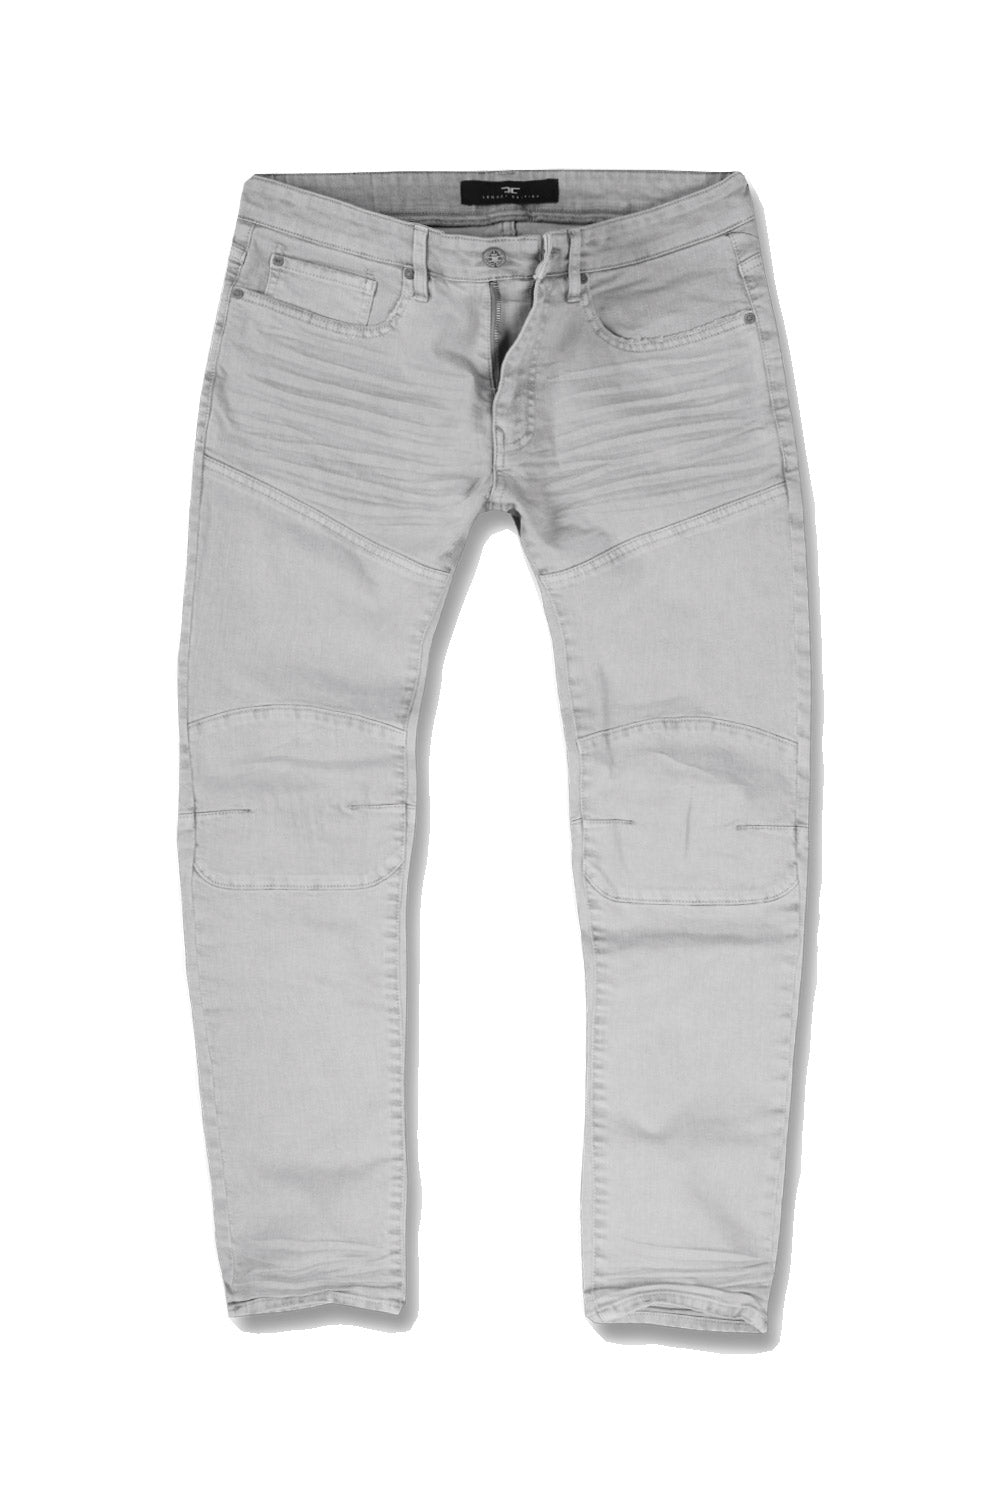 Jordan Craig - Kids - Louisville Moto Denim (Light Grey)